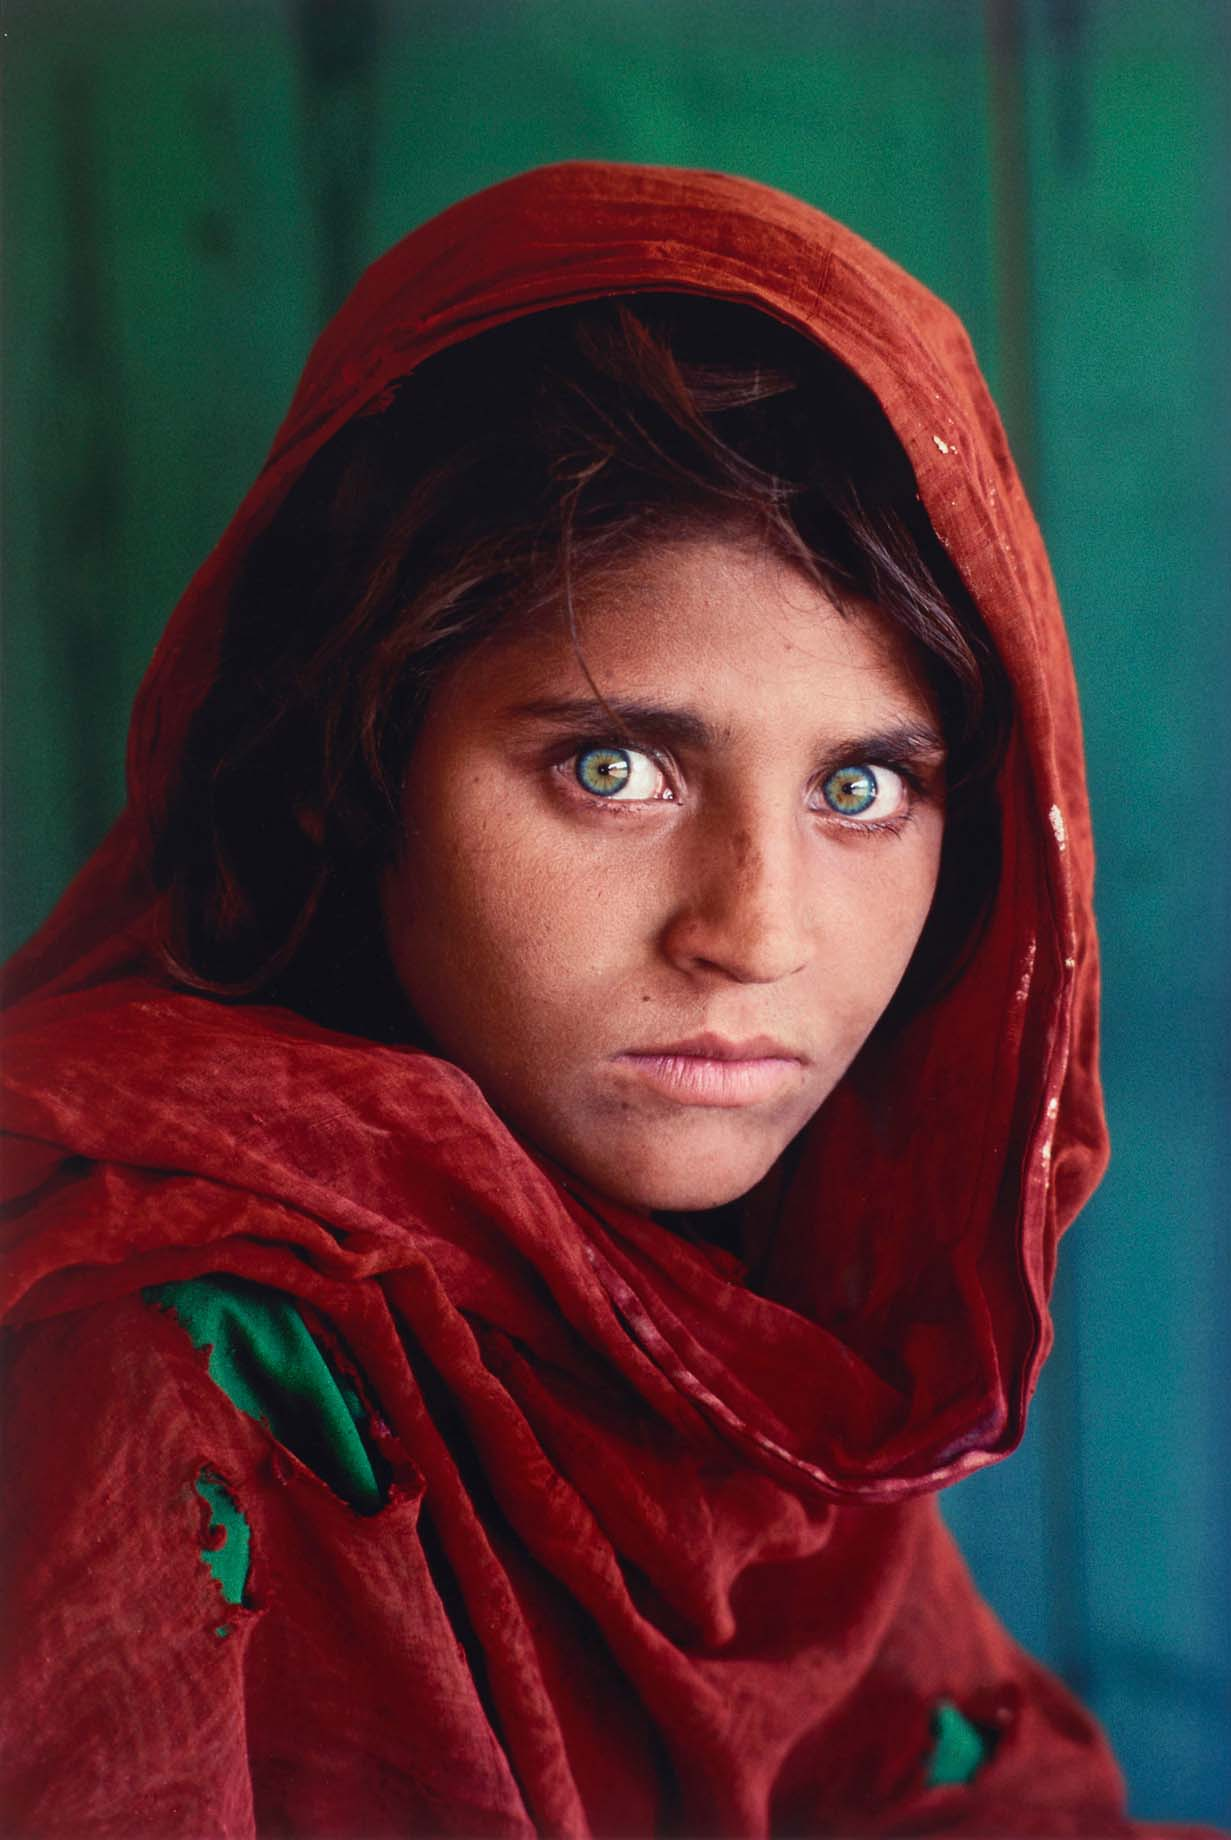 learn-from-the-masters-steve-mccurry-afghan-girl.jpg